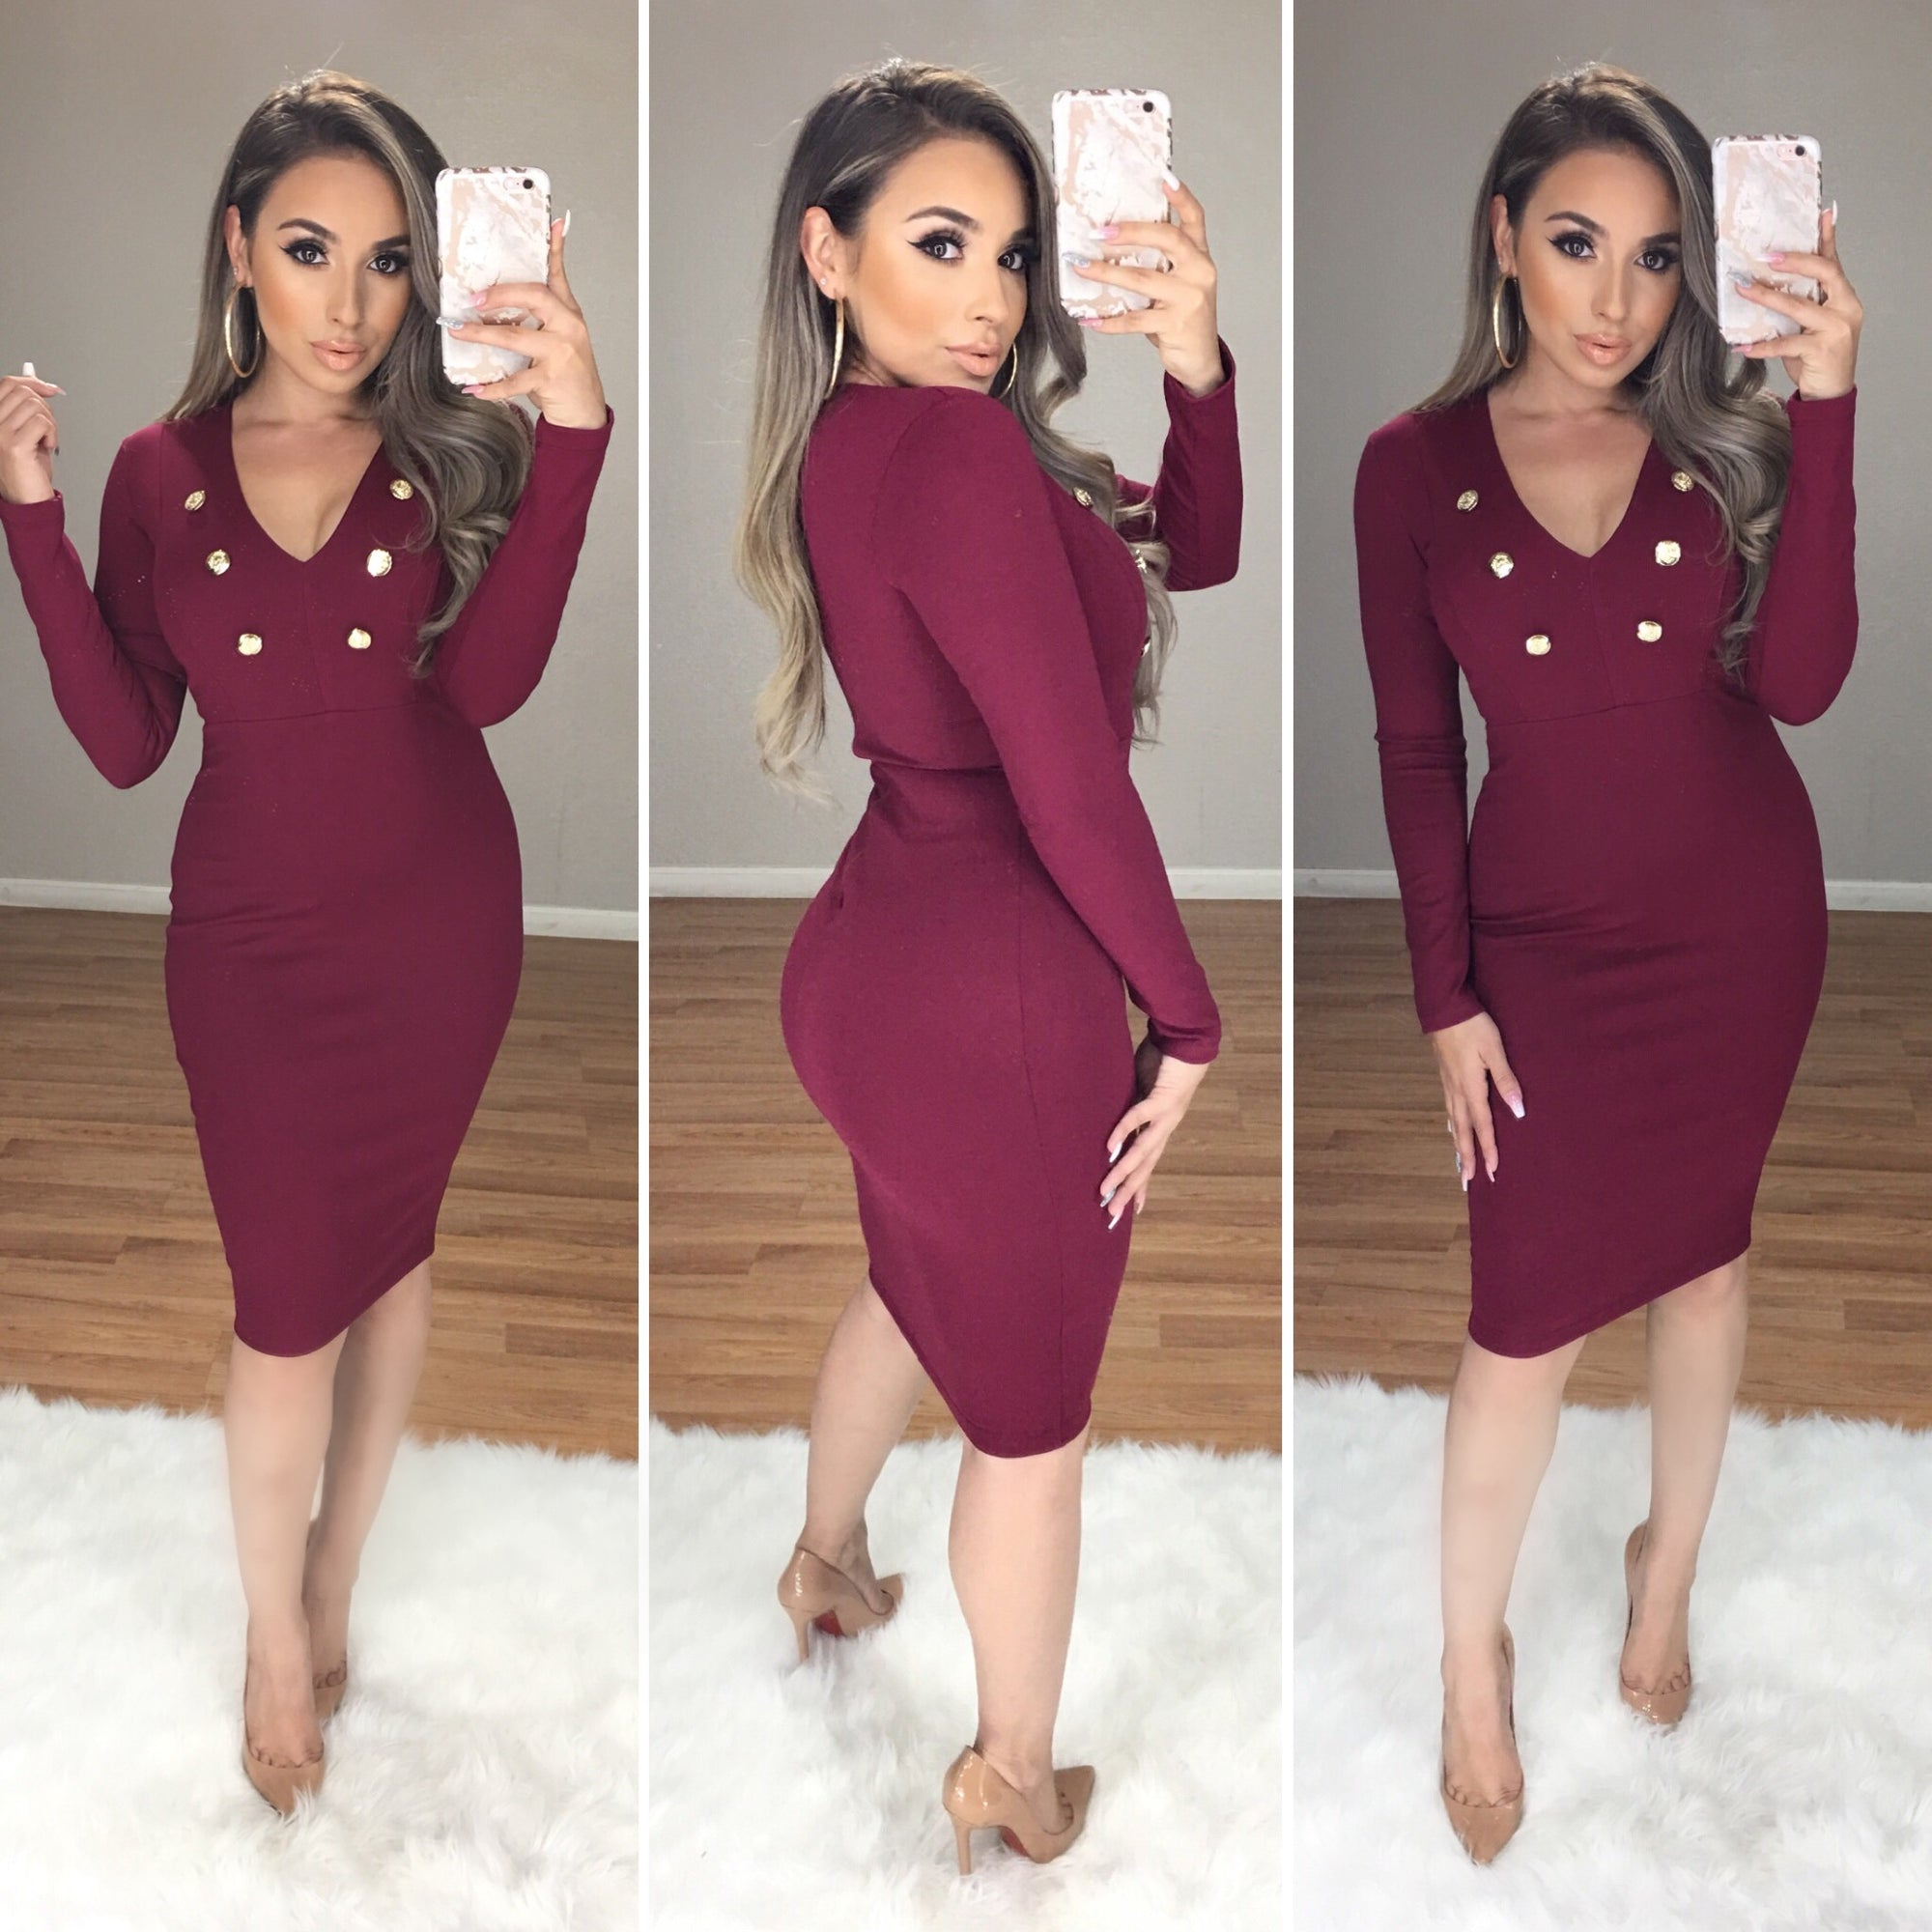 Affinity Couture Midi Dress (Burgundy)